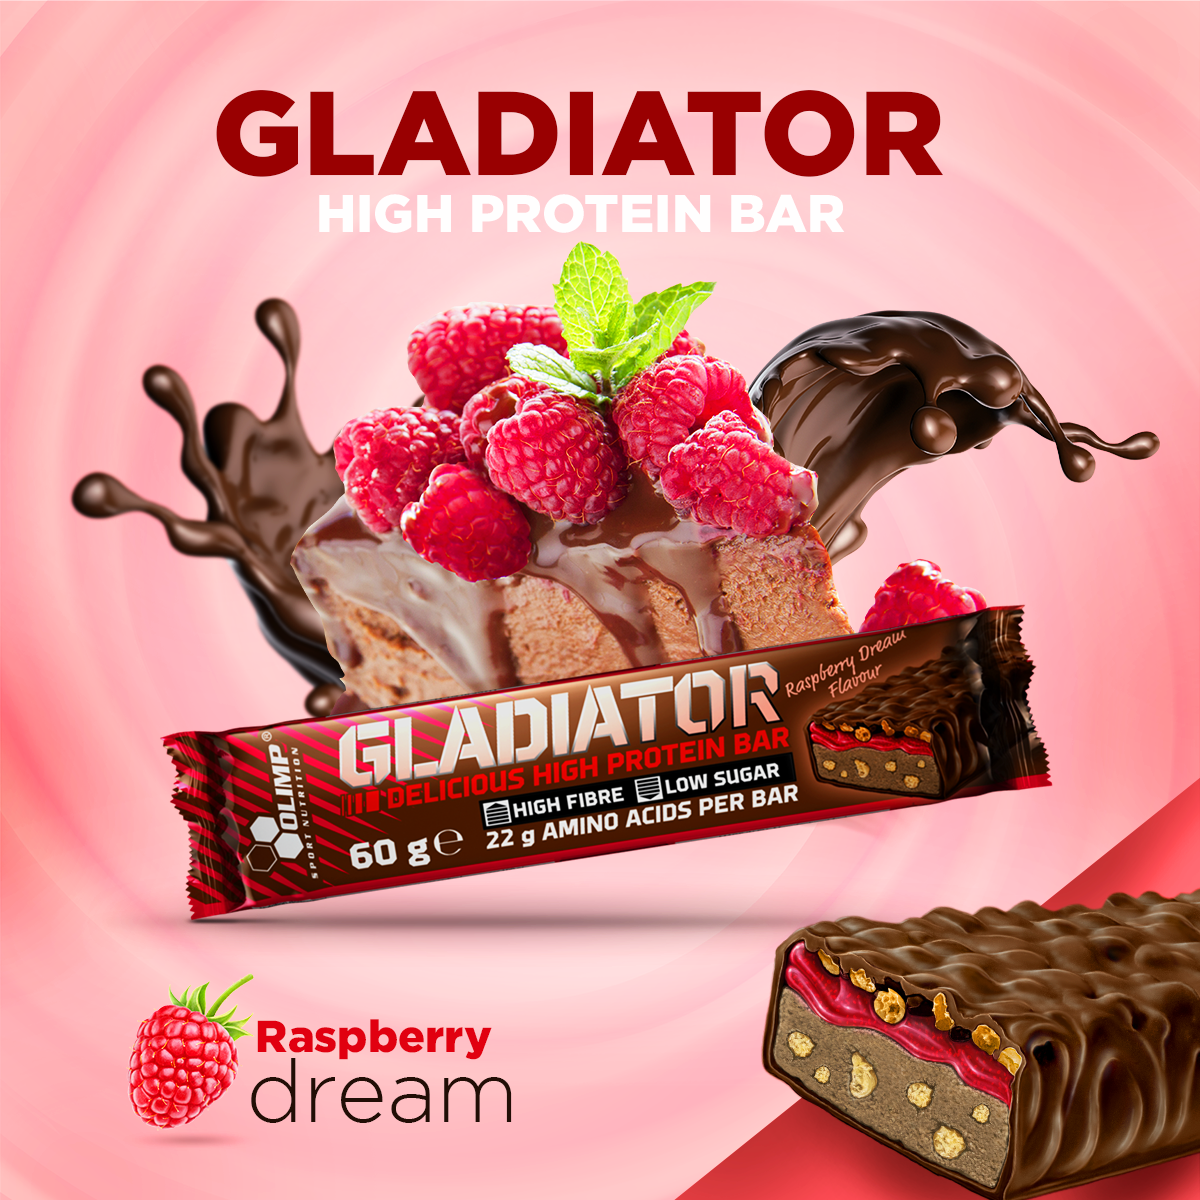 Gladiator, delicious high protein bar, 60g, Olimp, Brownie